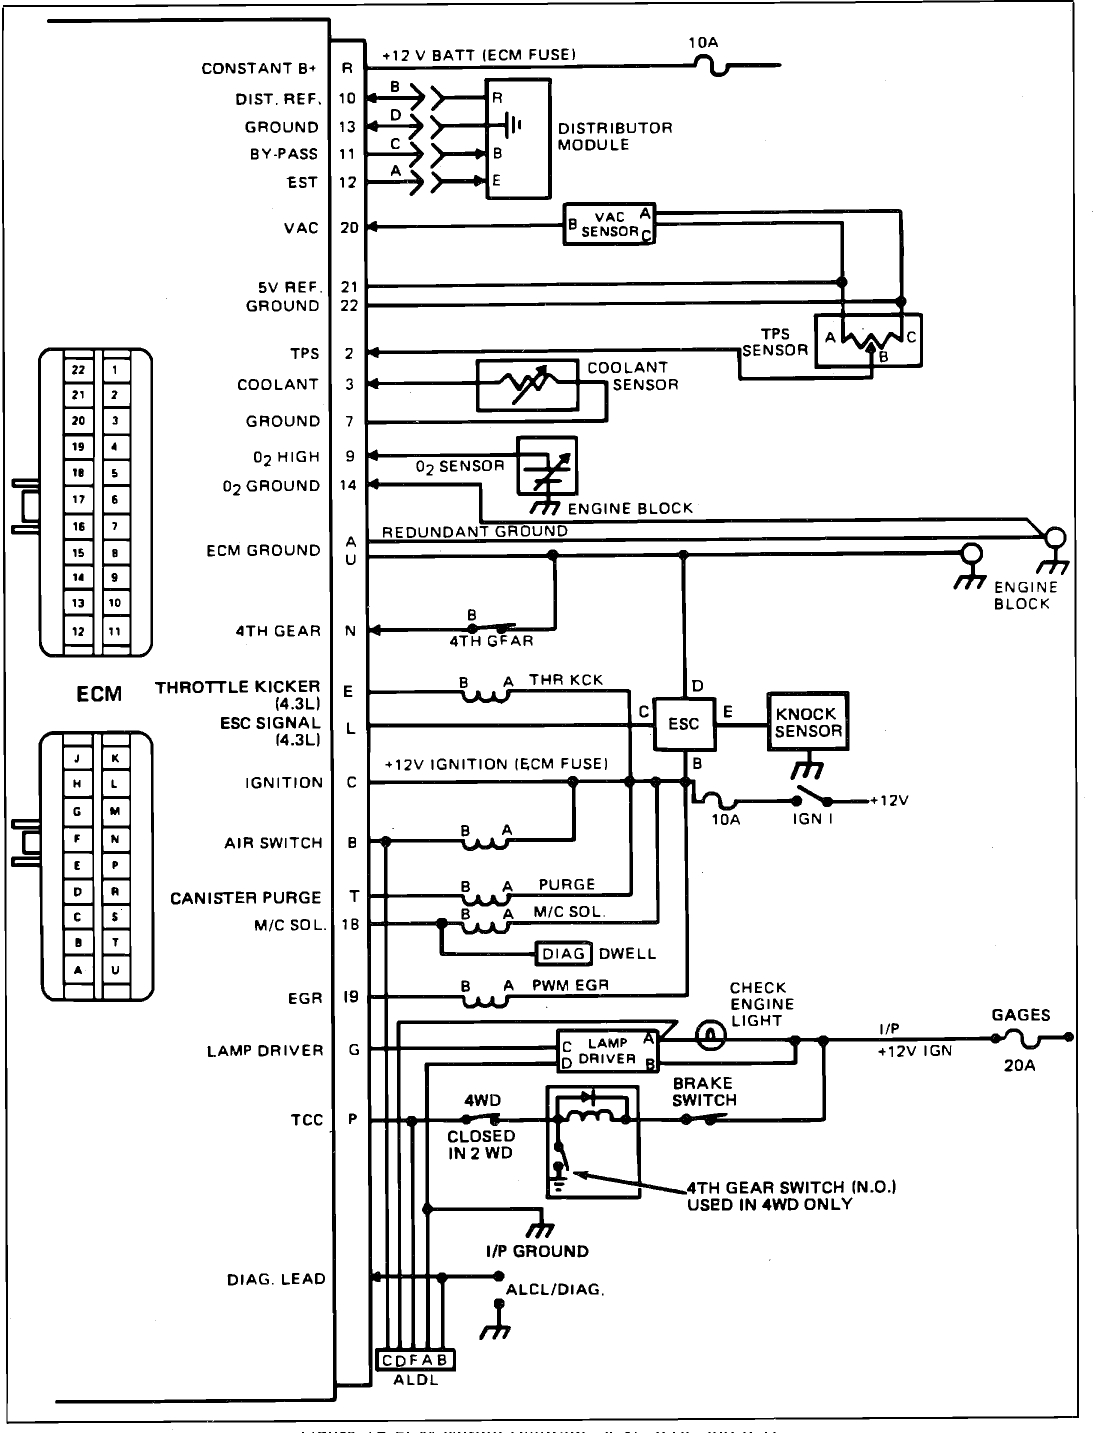 [SCHEMATICS_48EU]  WRG-6760] Chevy Van G20 Wiring Diagram | 1988 Chevrolet K2500 Wiring Diagram |  | mx.tl